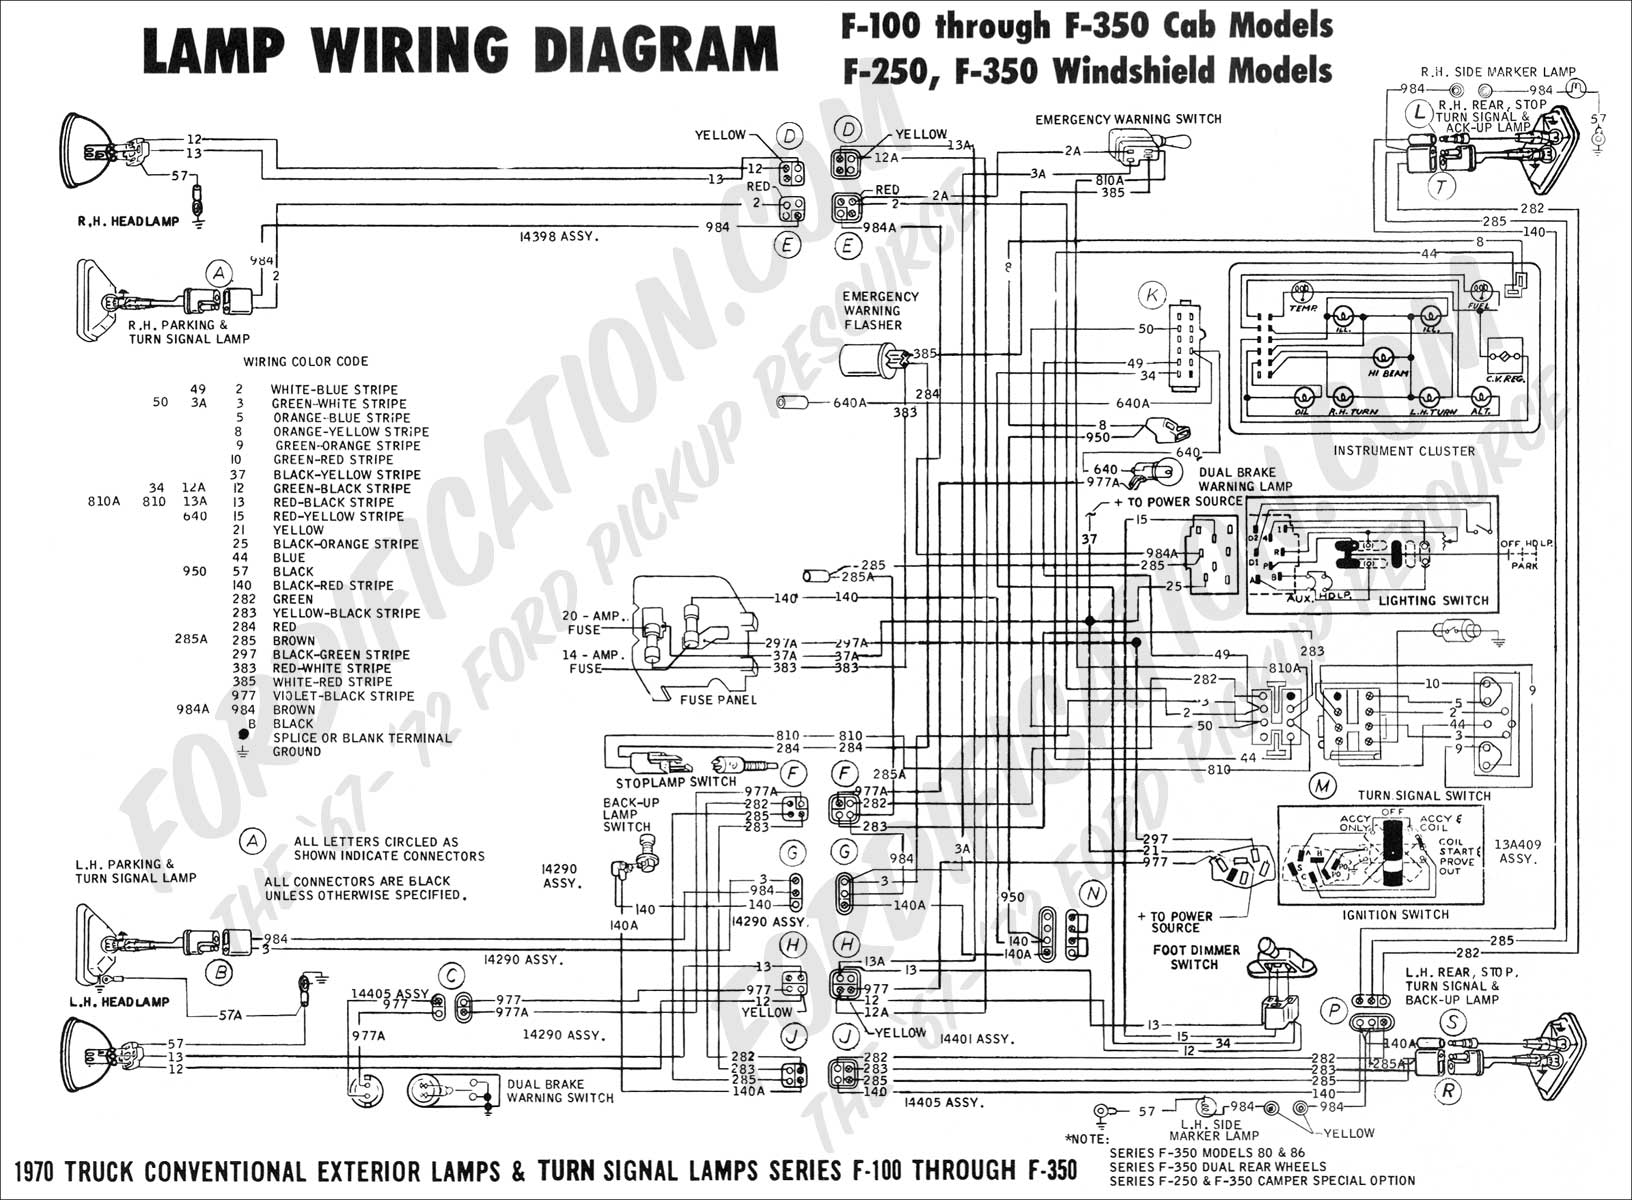 5bm4f Mitsubishi Montero Ls 1996 Mitsubishi Montero 4wd together with Chevy Cruze Air Conditioning Wiring Diagrams also Oxygen Sensor Location On Mitsubishi Eclipse O2 furthermore Honda Accord Timing Belt in addition Discussion D336 ds721164. on 2000 mitsubishi montero sport fuse box diagram